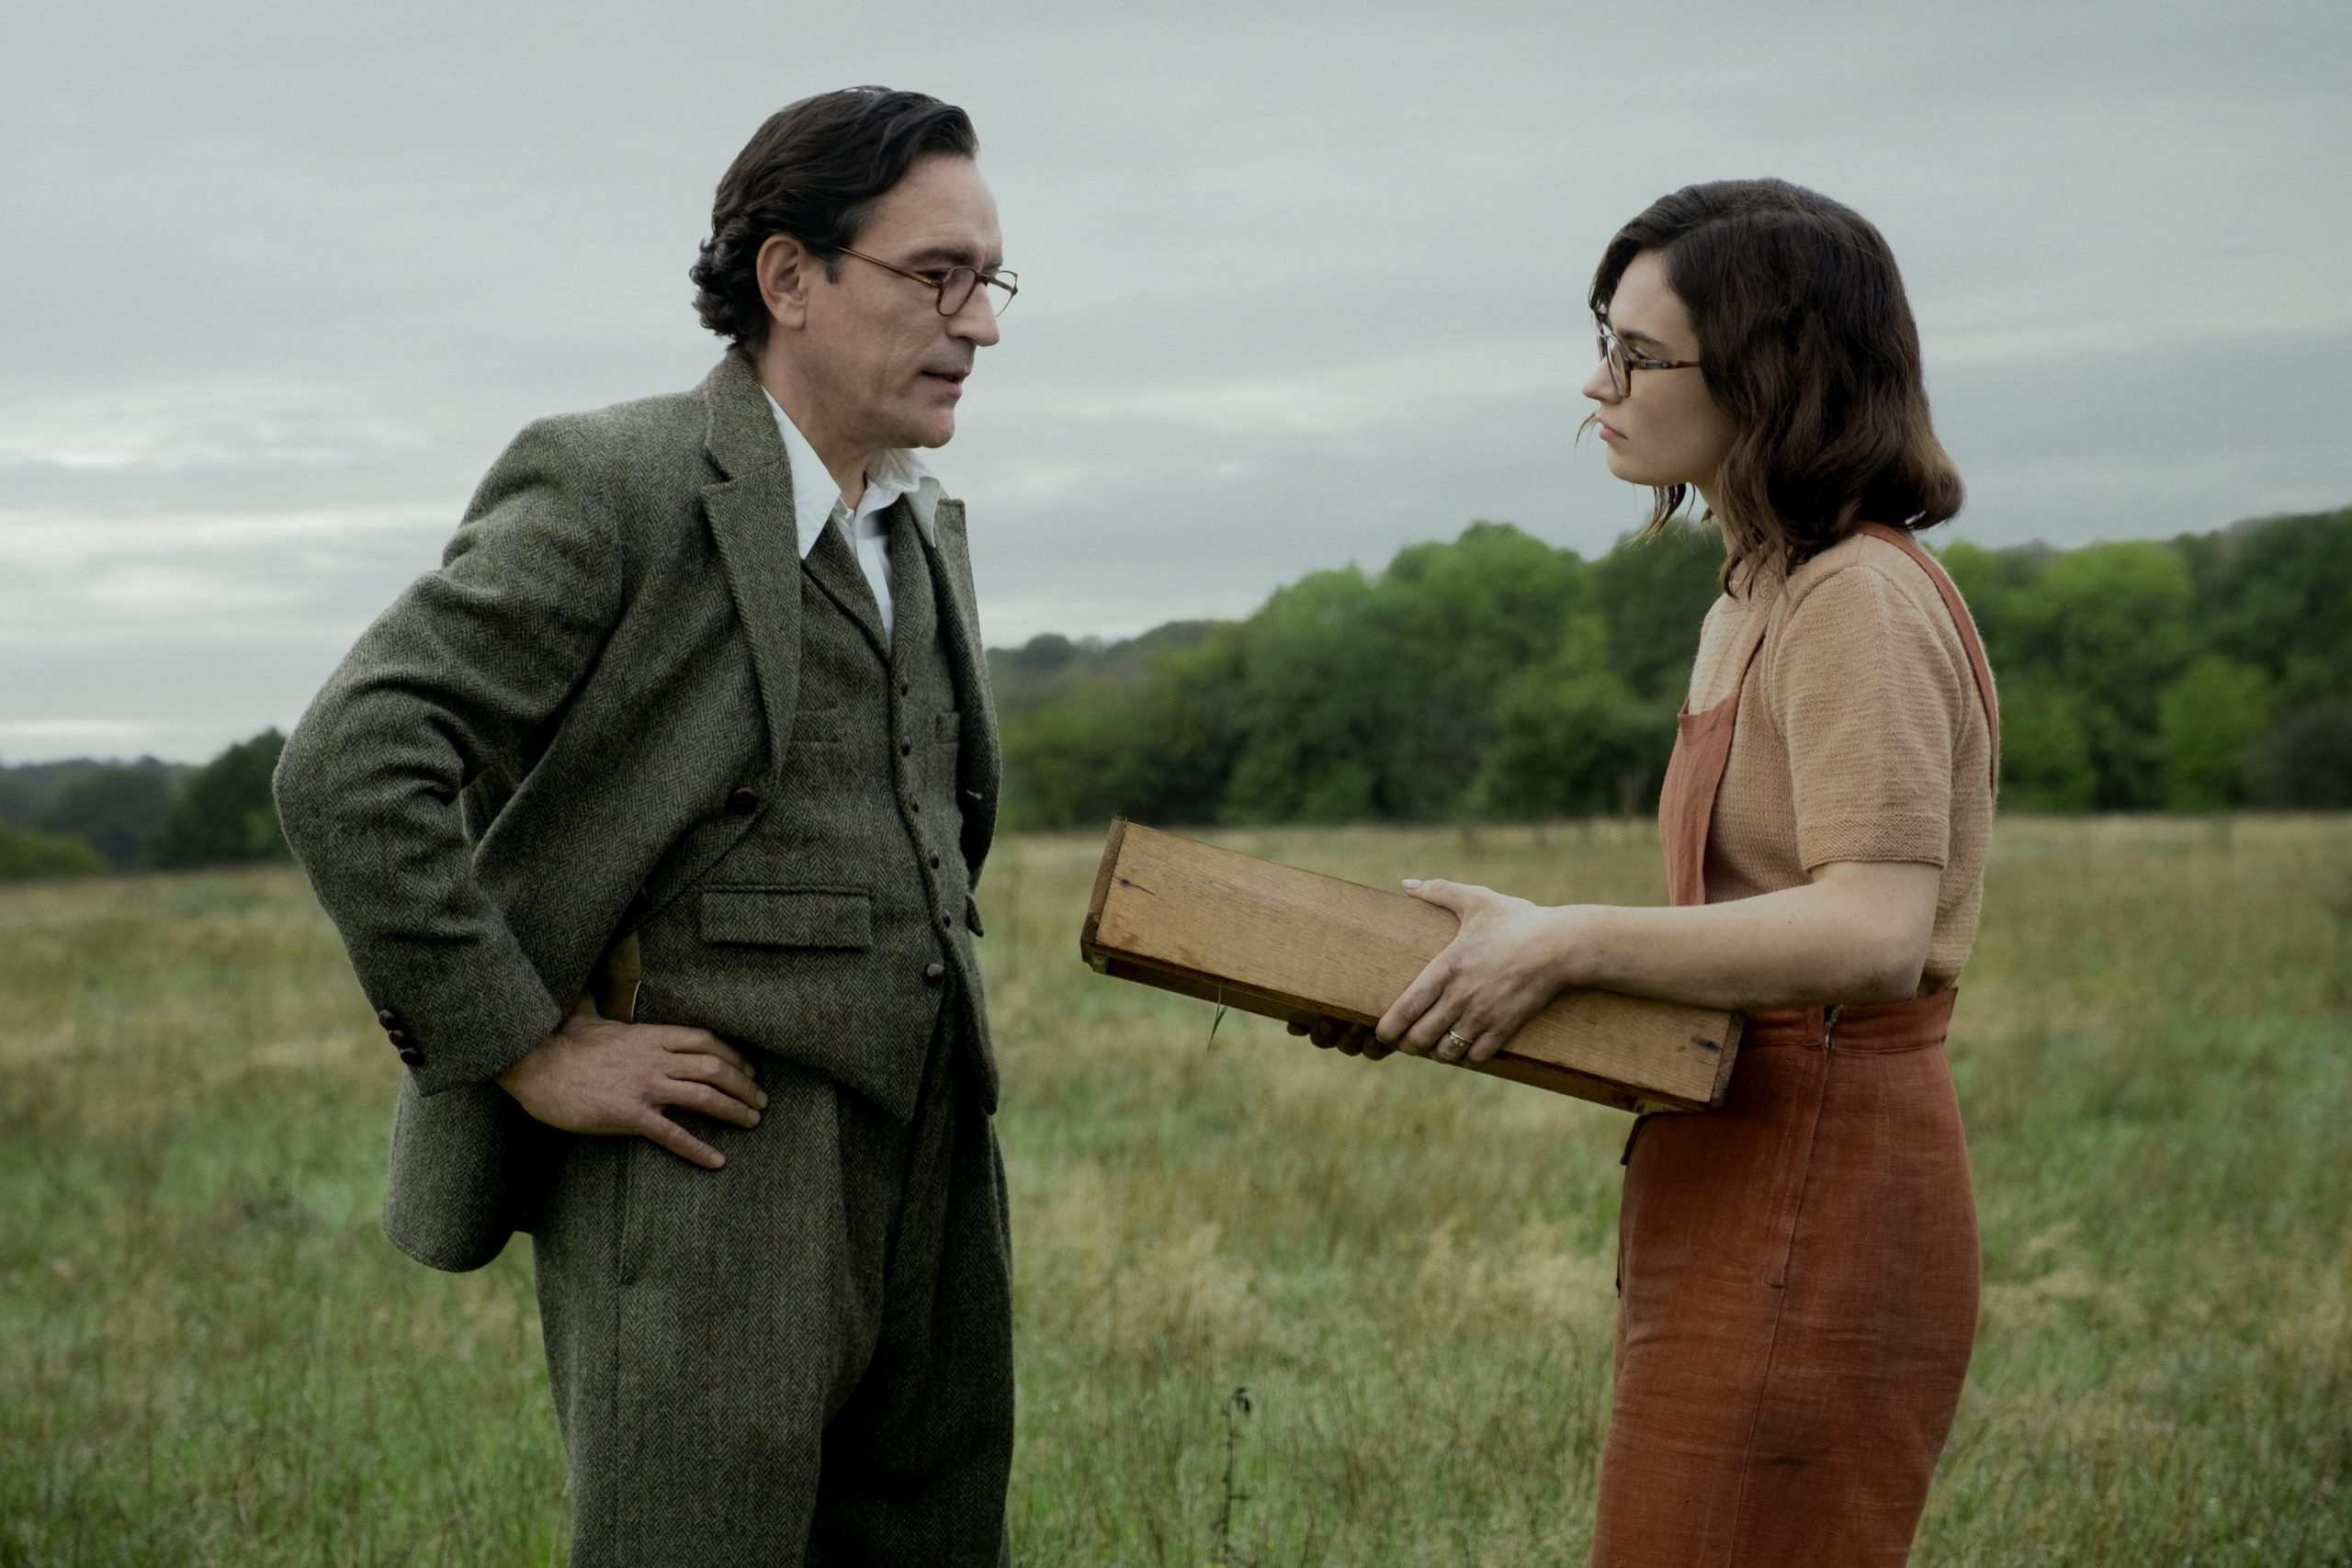 Still from The Dig: Peggy and husband in a field